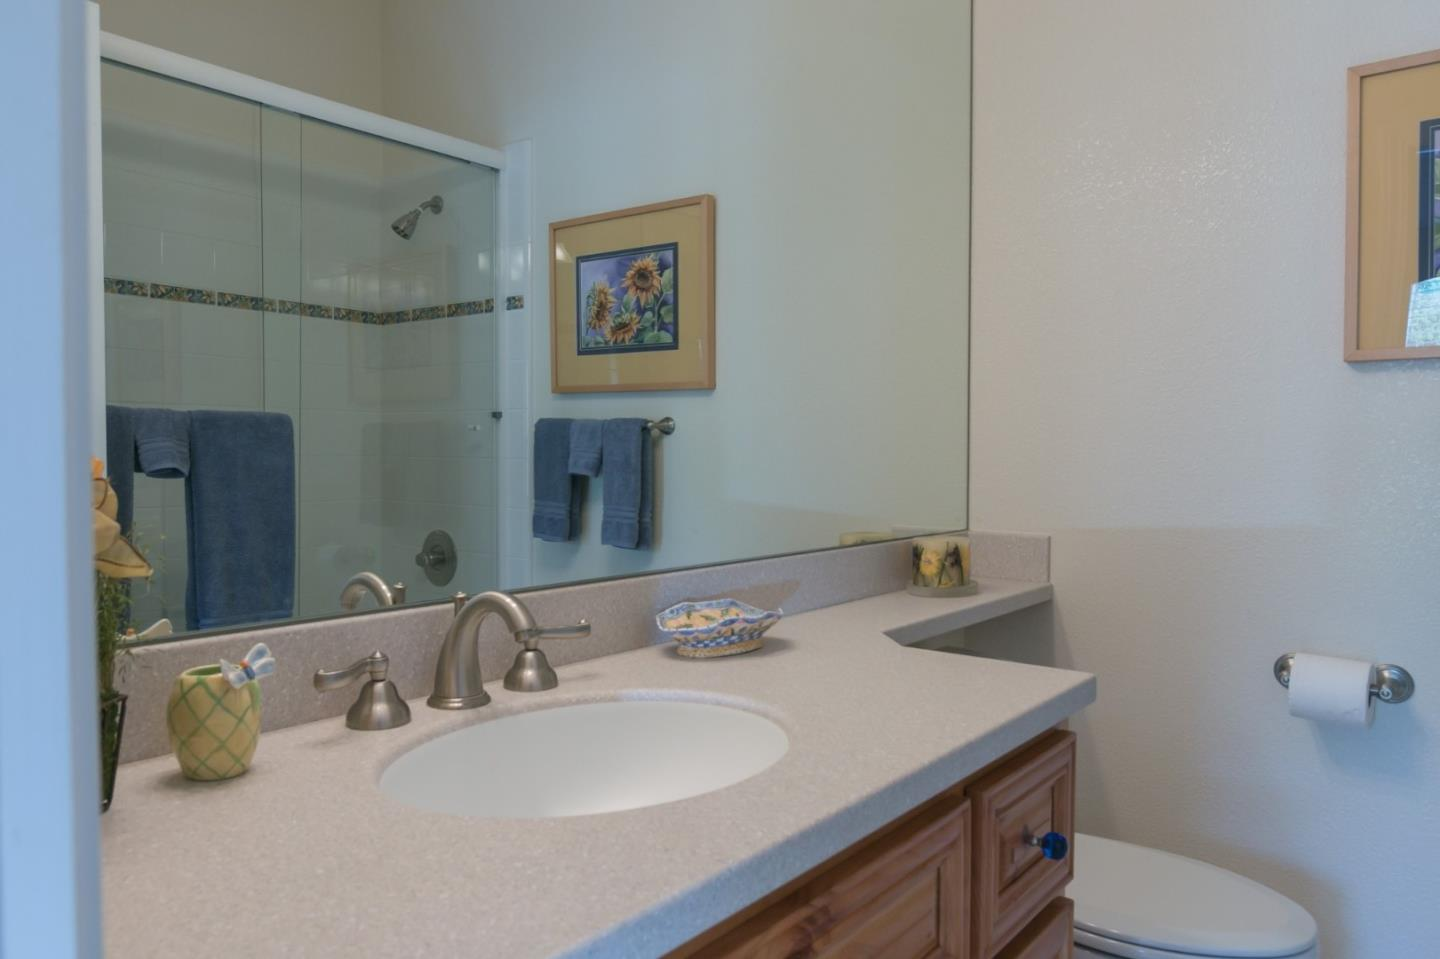 Additional photo for property listing at 1077 Shoreline Drive 1077 Shoreline Drive Copperopolis, California 95228 Estados Unidos